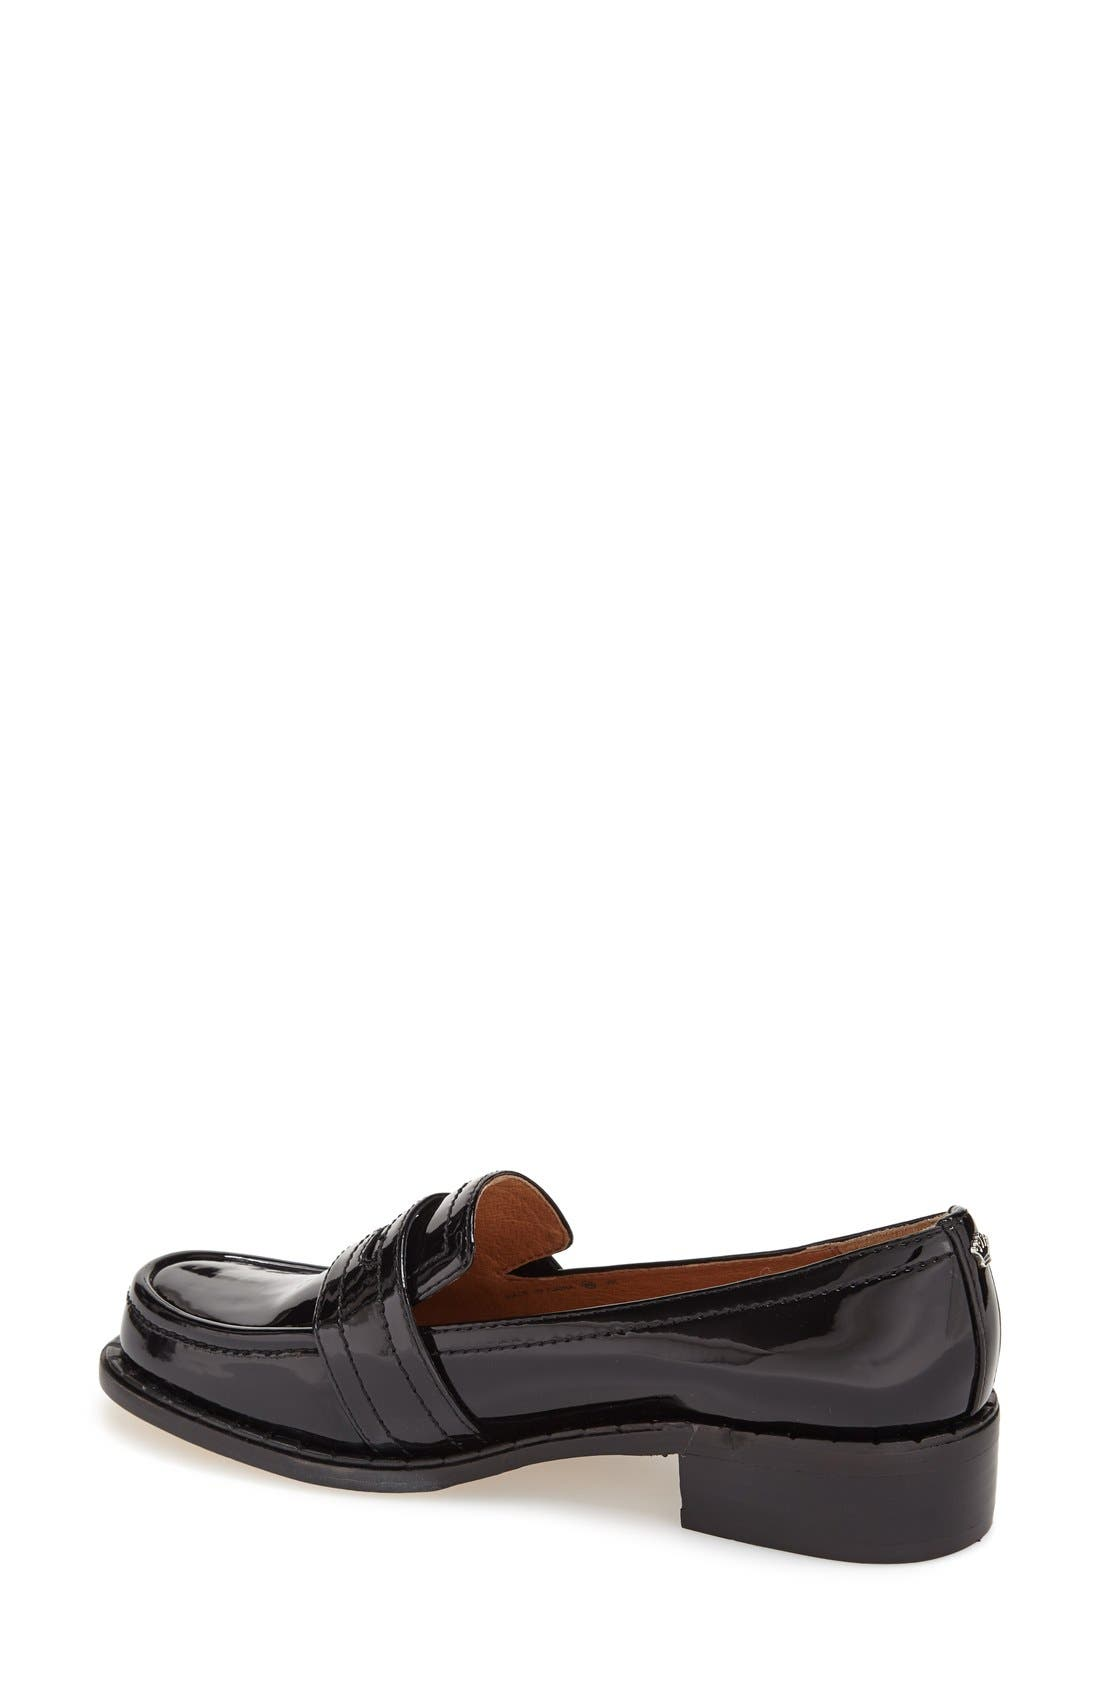 Alternate Image 2  - Nina Originals 'Mystique' Penny Loafer (Women)